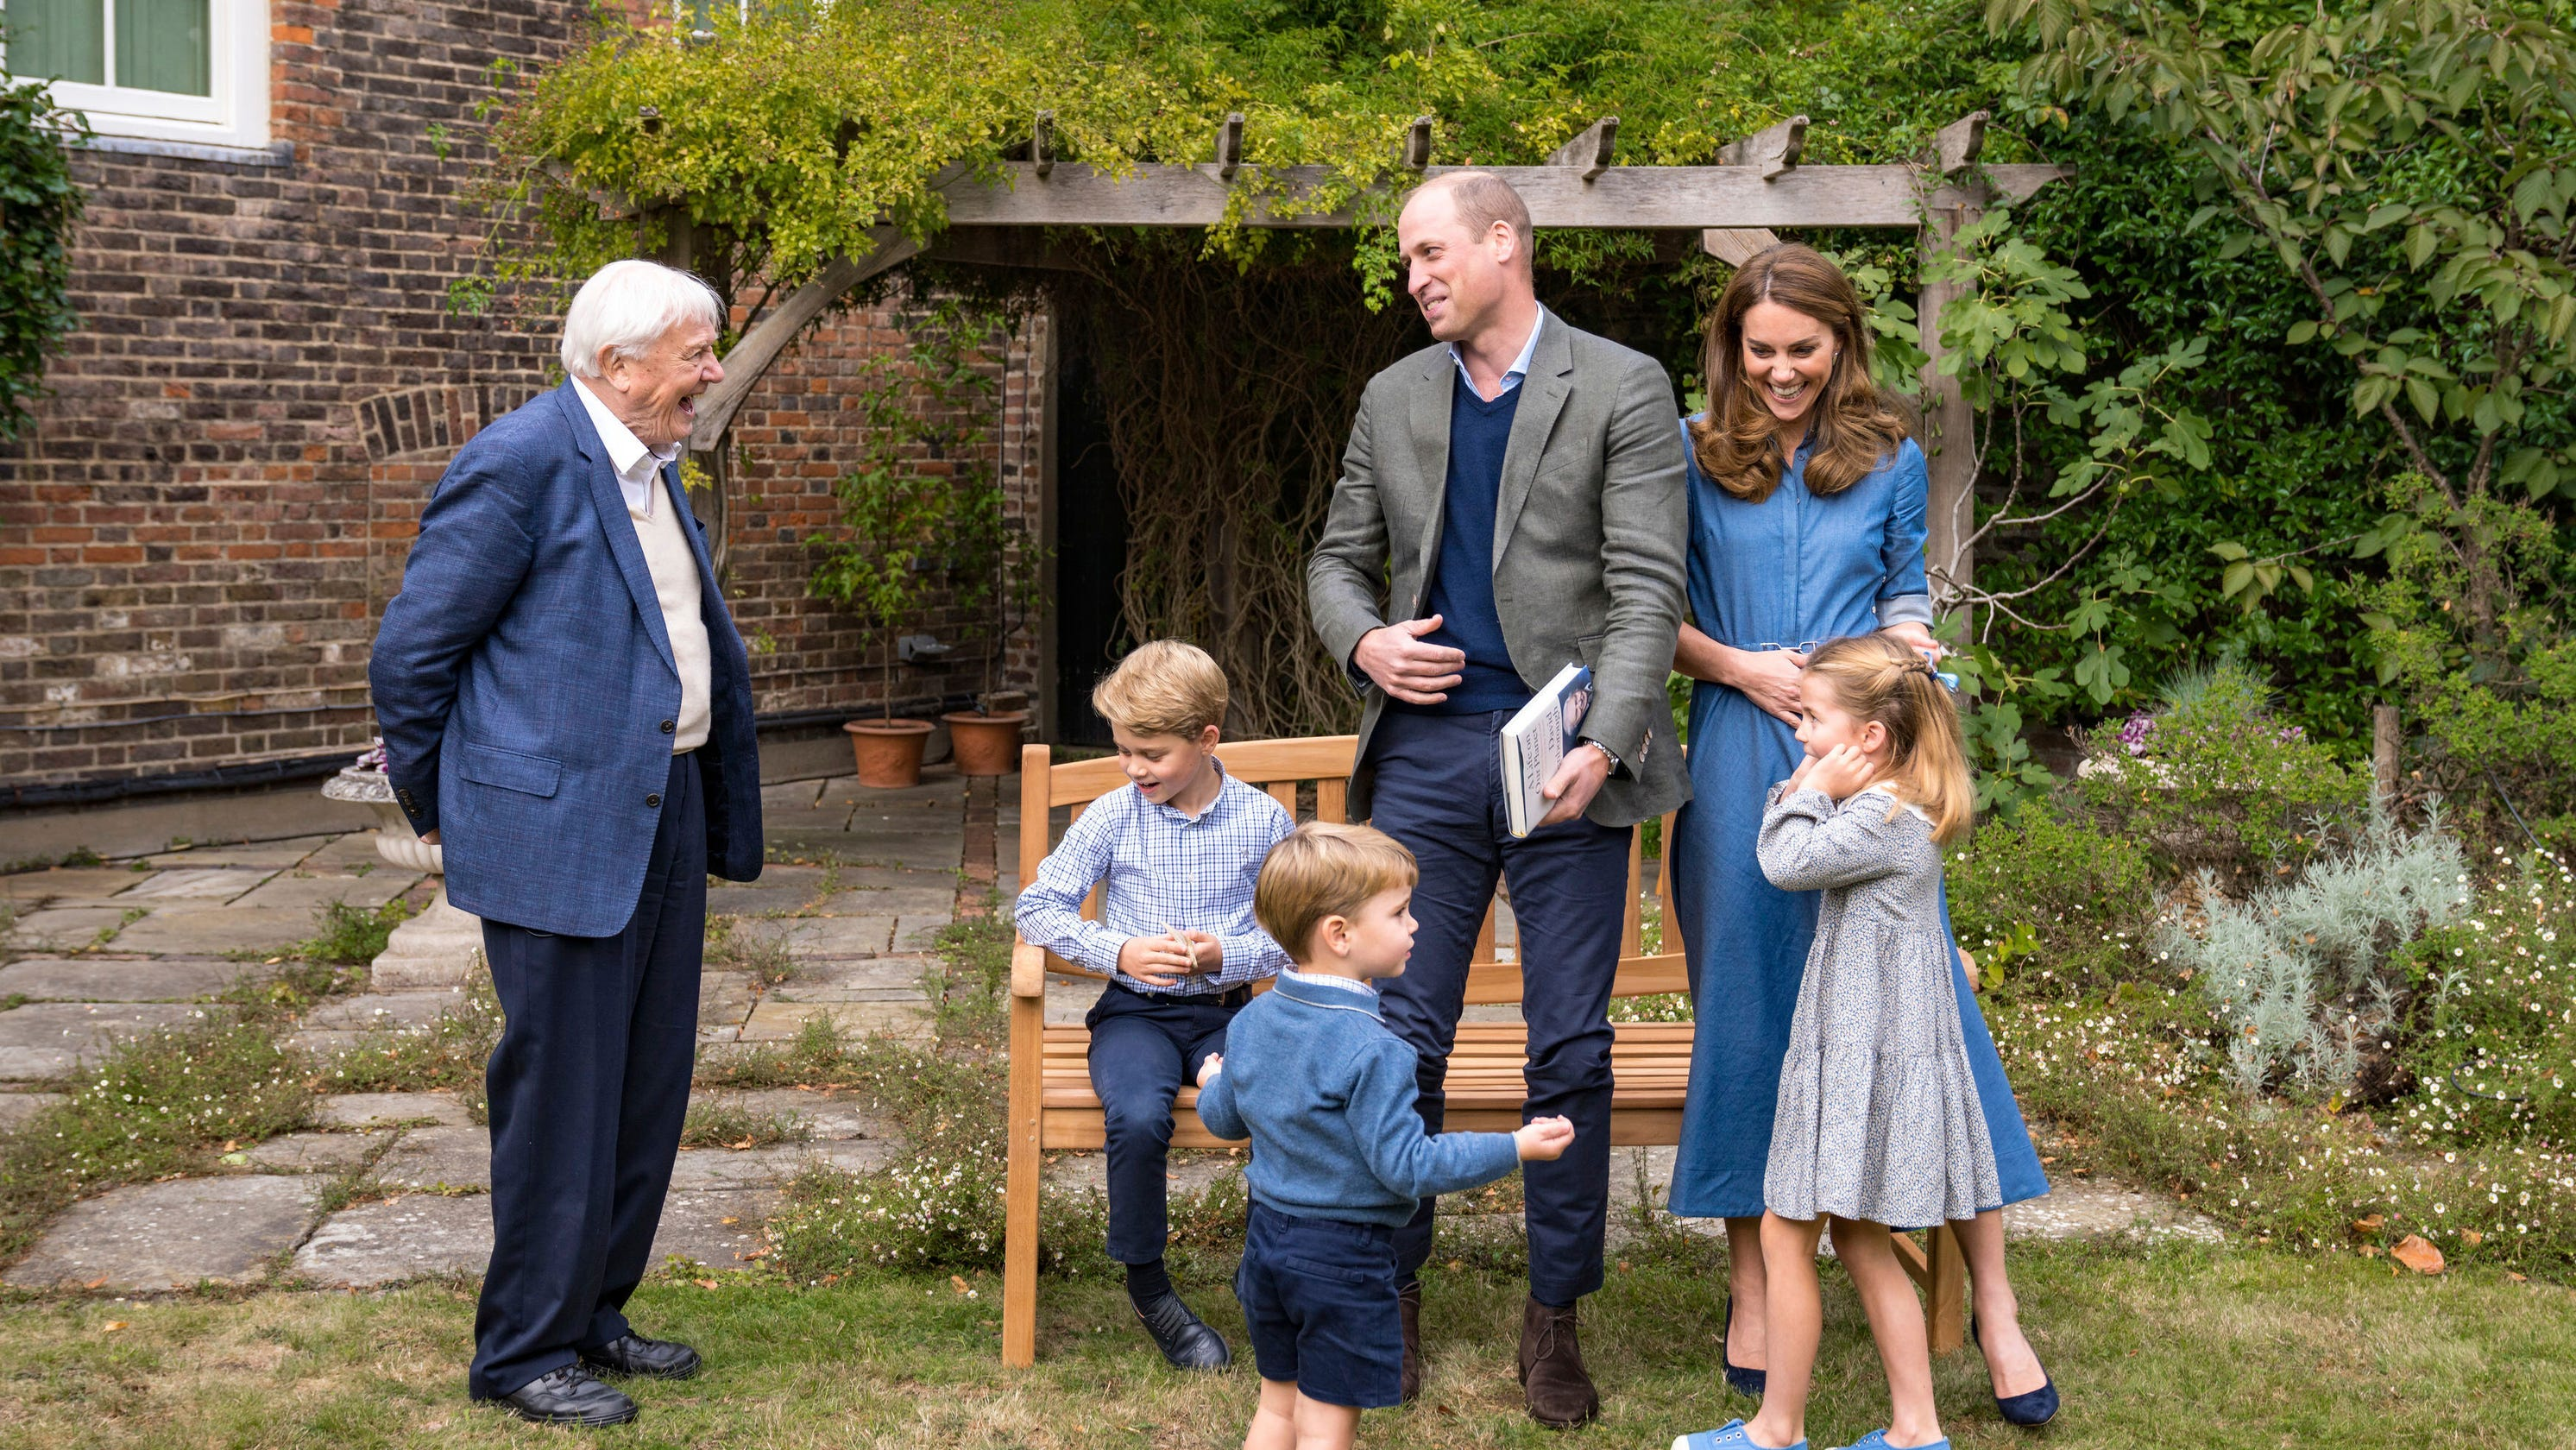 Prince William Duchess Kate share new photos of their family with Sir David Attenborough – USA TODAY